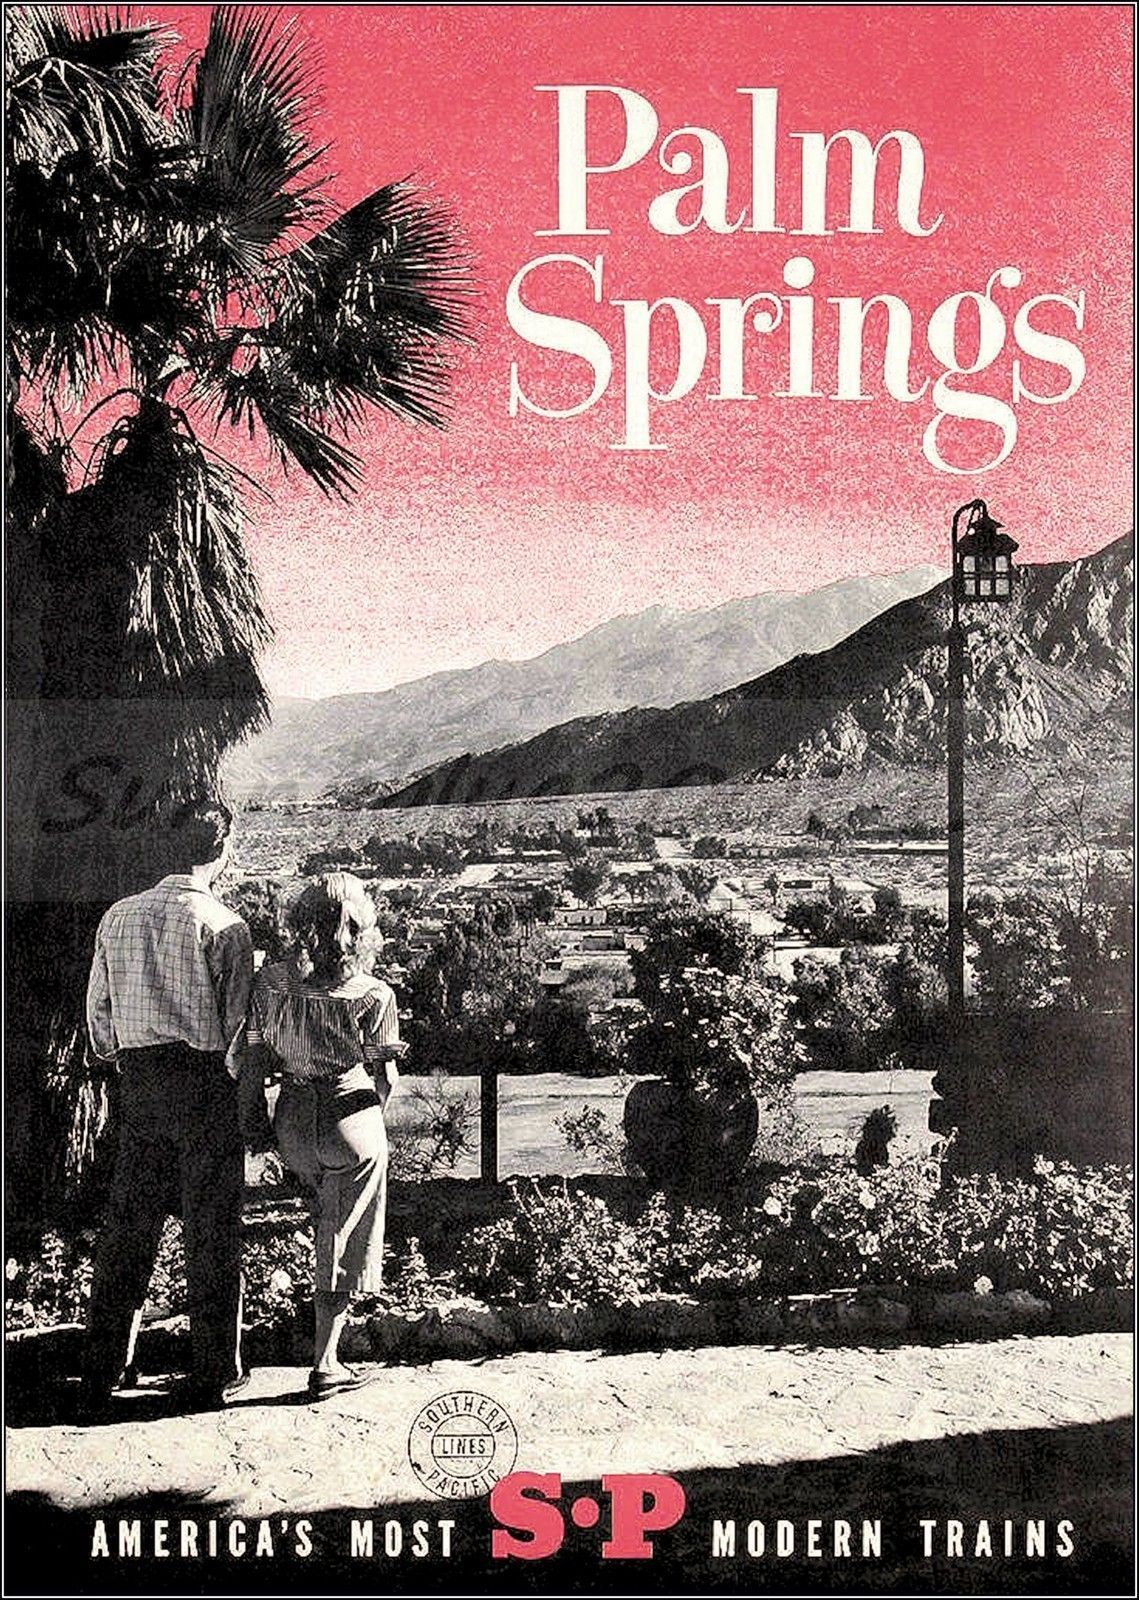 Palm Springs California Vintage United States Travel Advertisement Art Poster